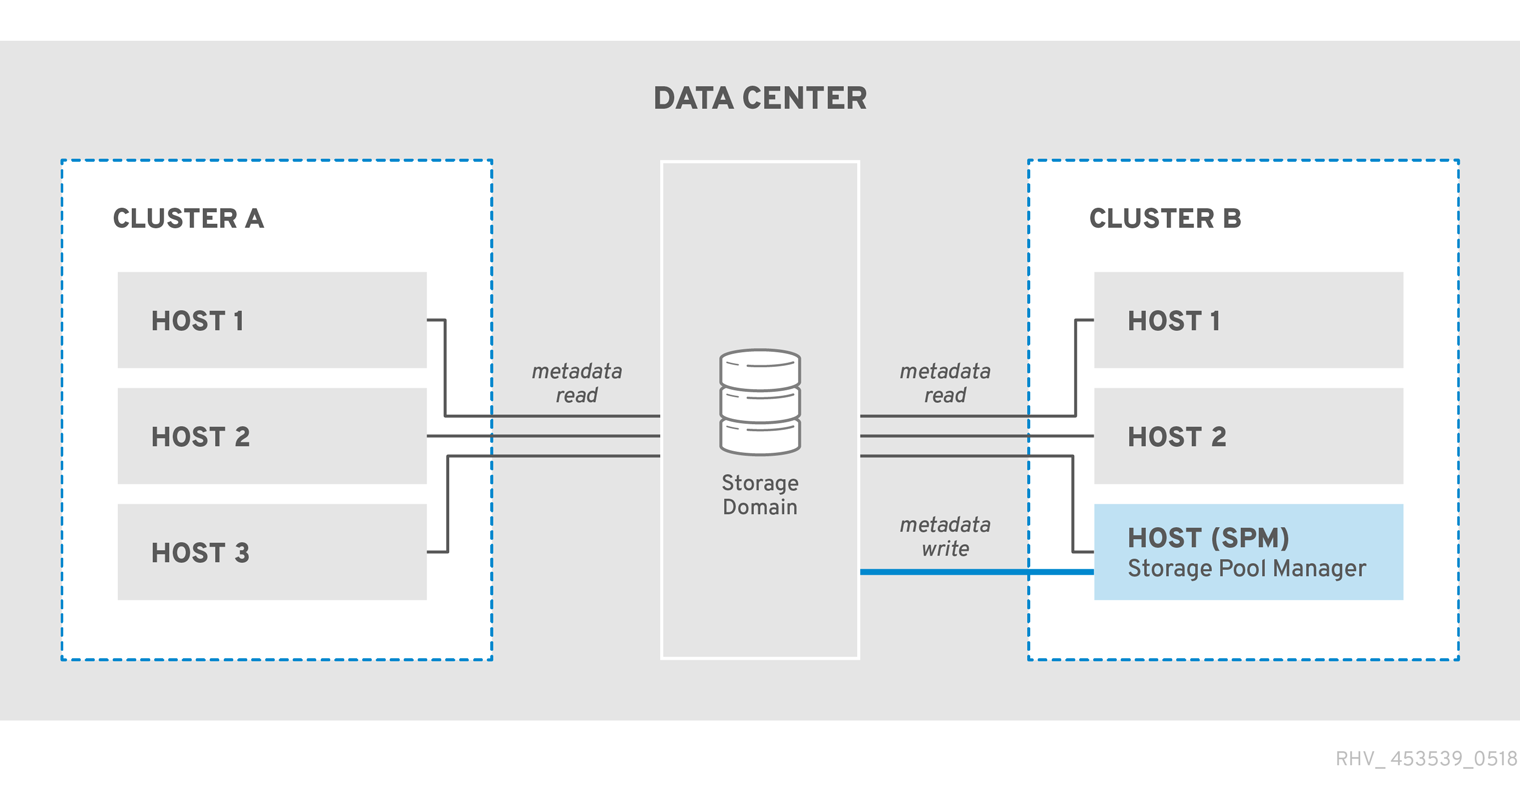 The storage pool manager reads and writes structural metadata, other hosts read structural metadata.